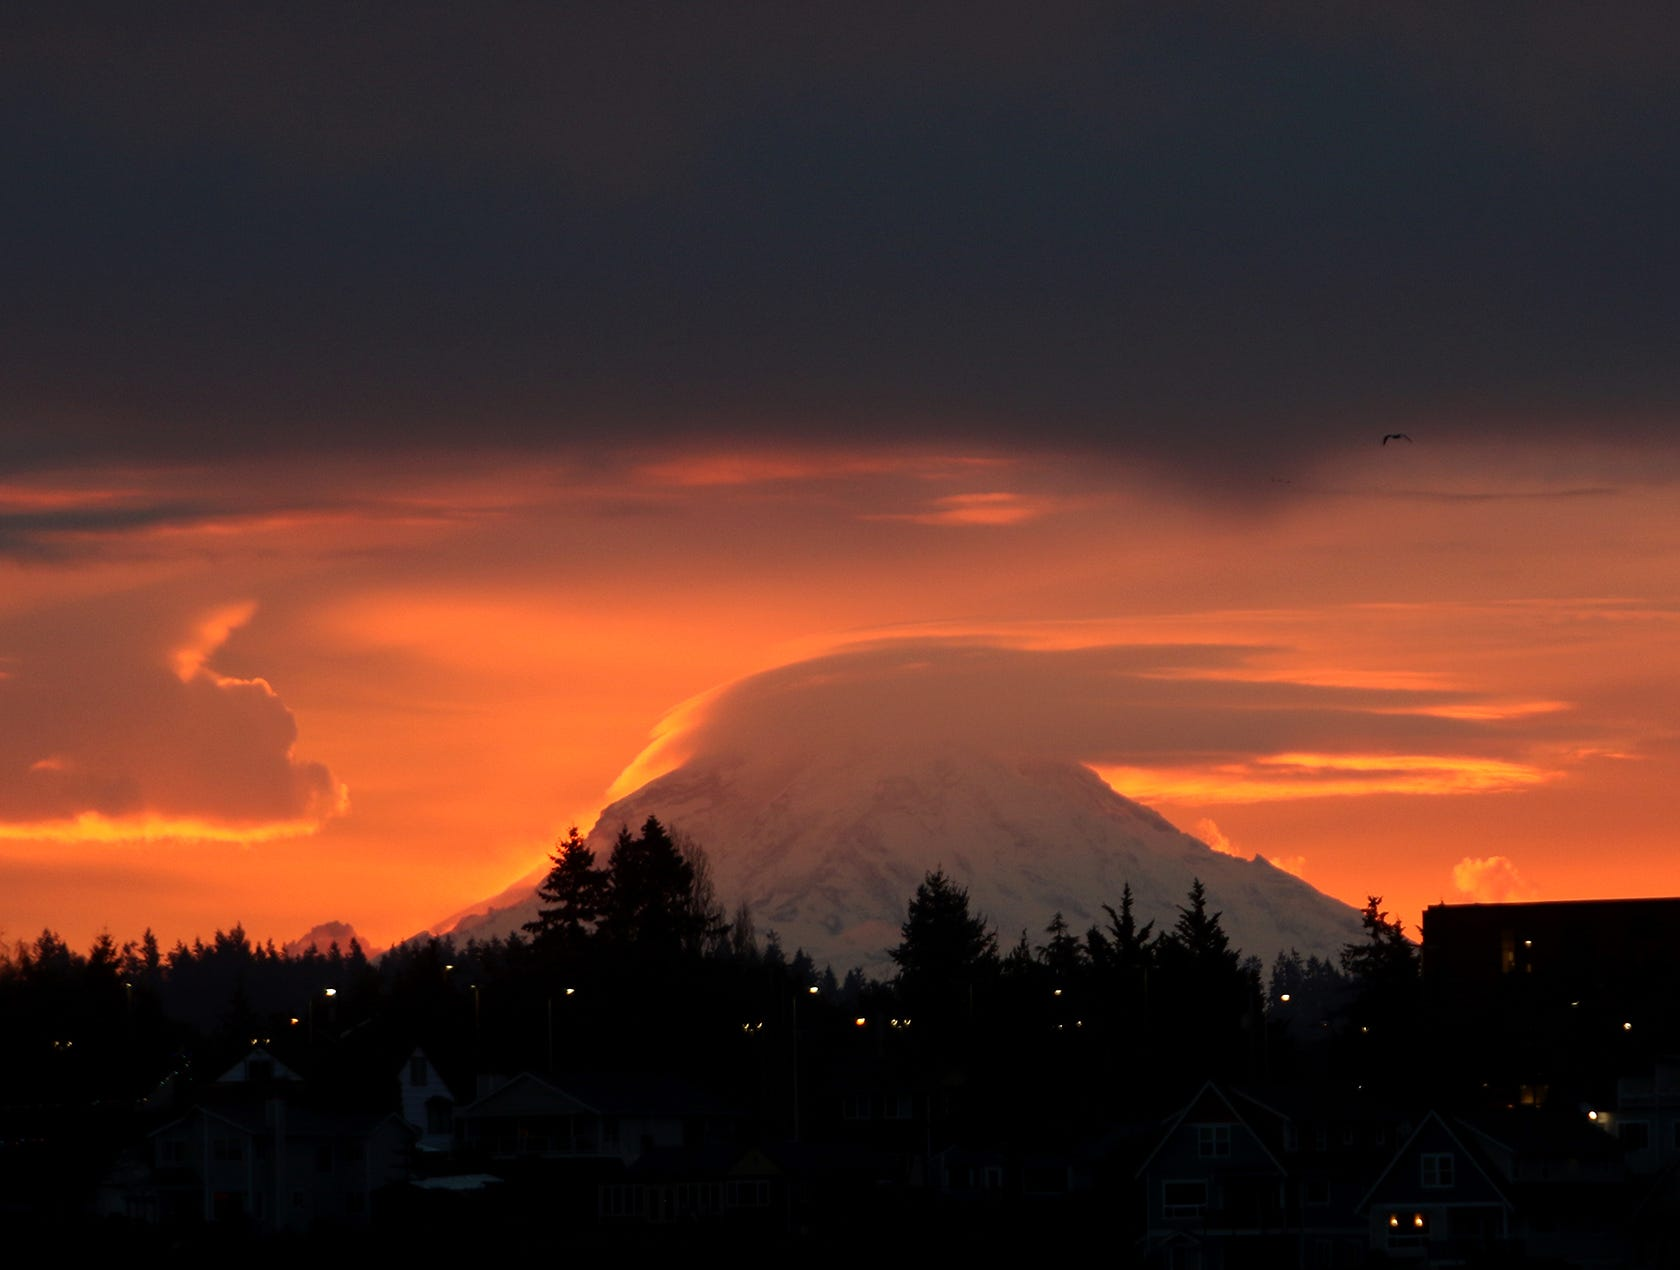 The sunrise lights up Mt. Rainier from Lions Park in Bremerton on December 22, 2018.